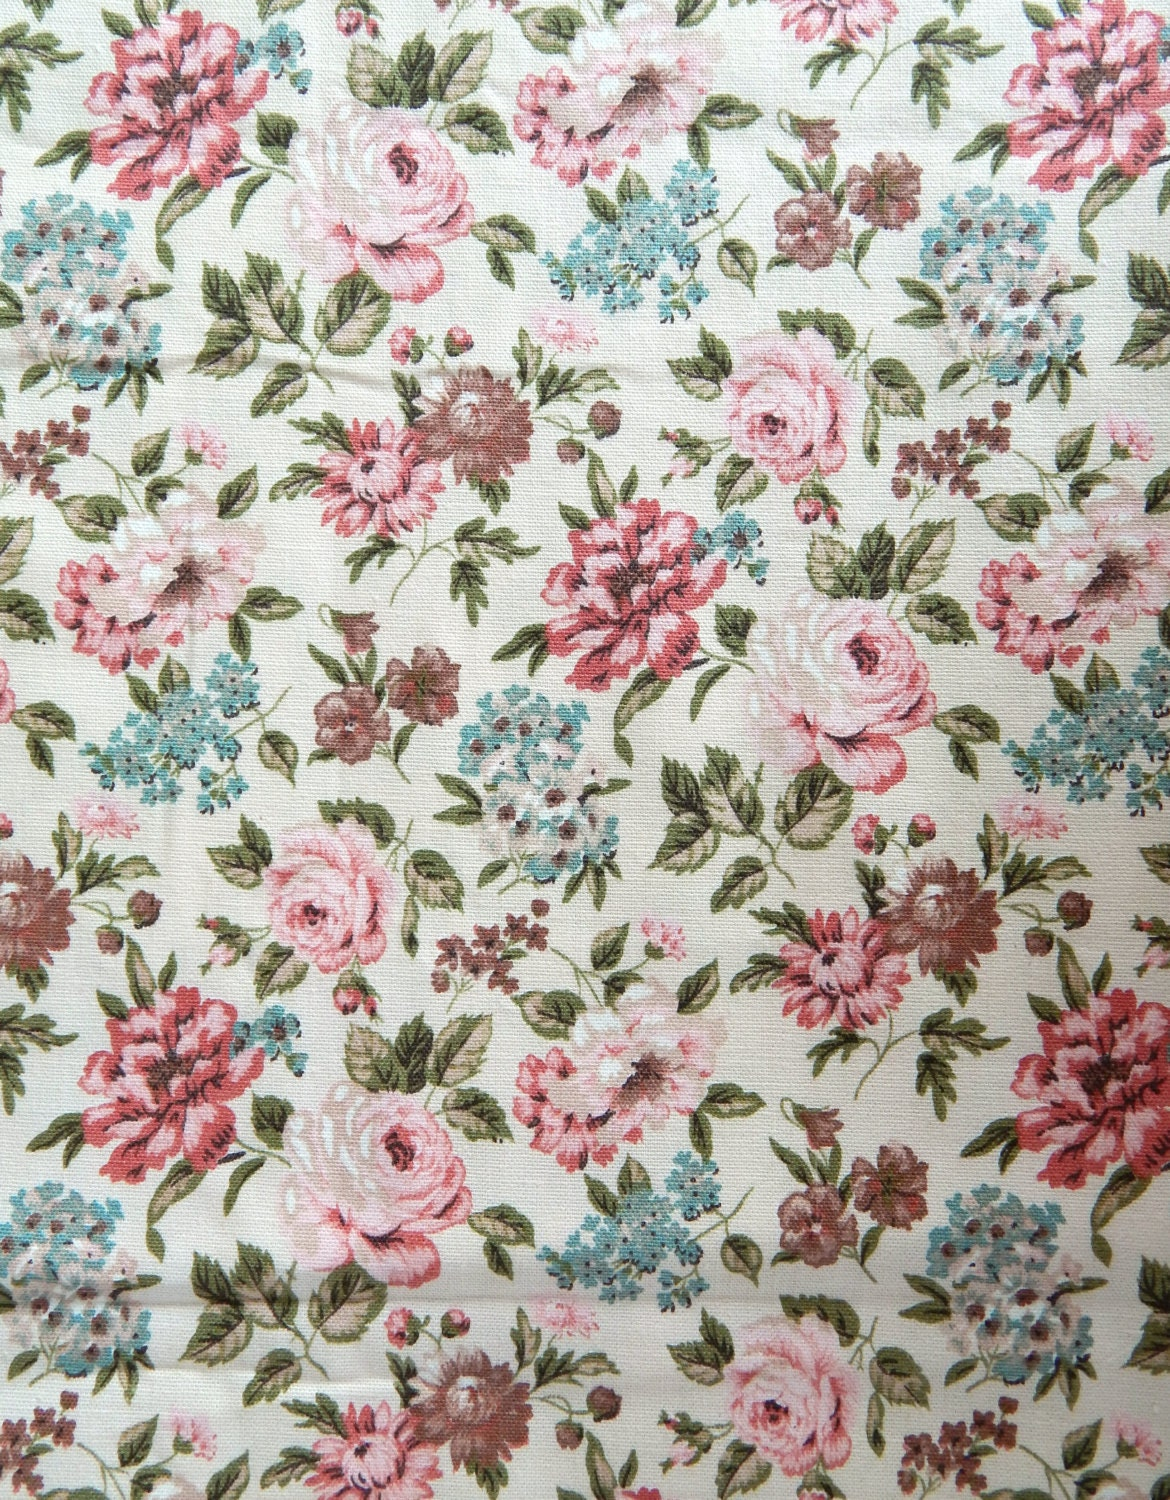 Vintage Waverly Bonded Fabric Barkcloth Cotton 4 Yards Floral